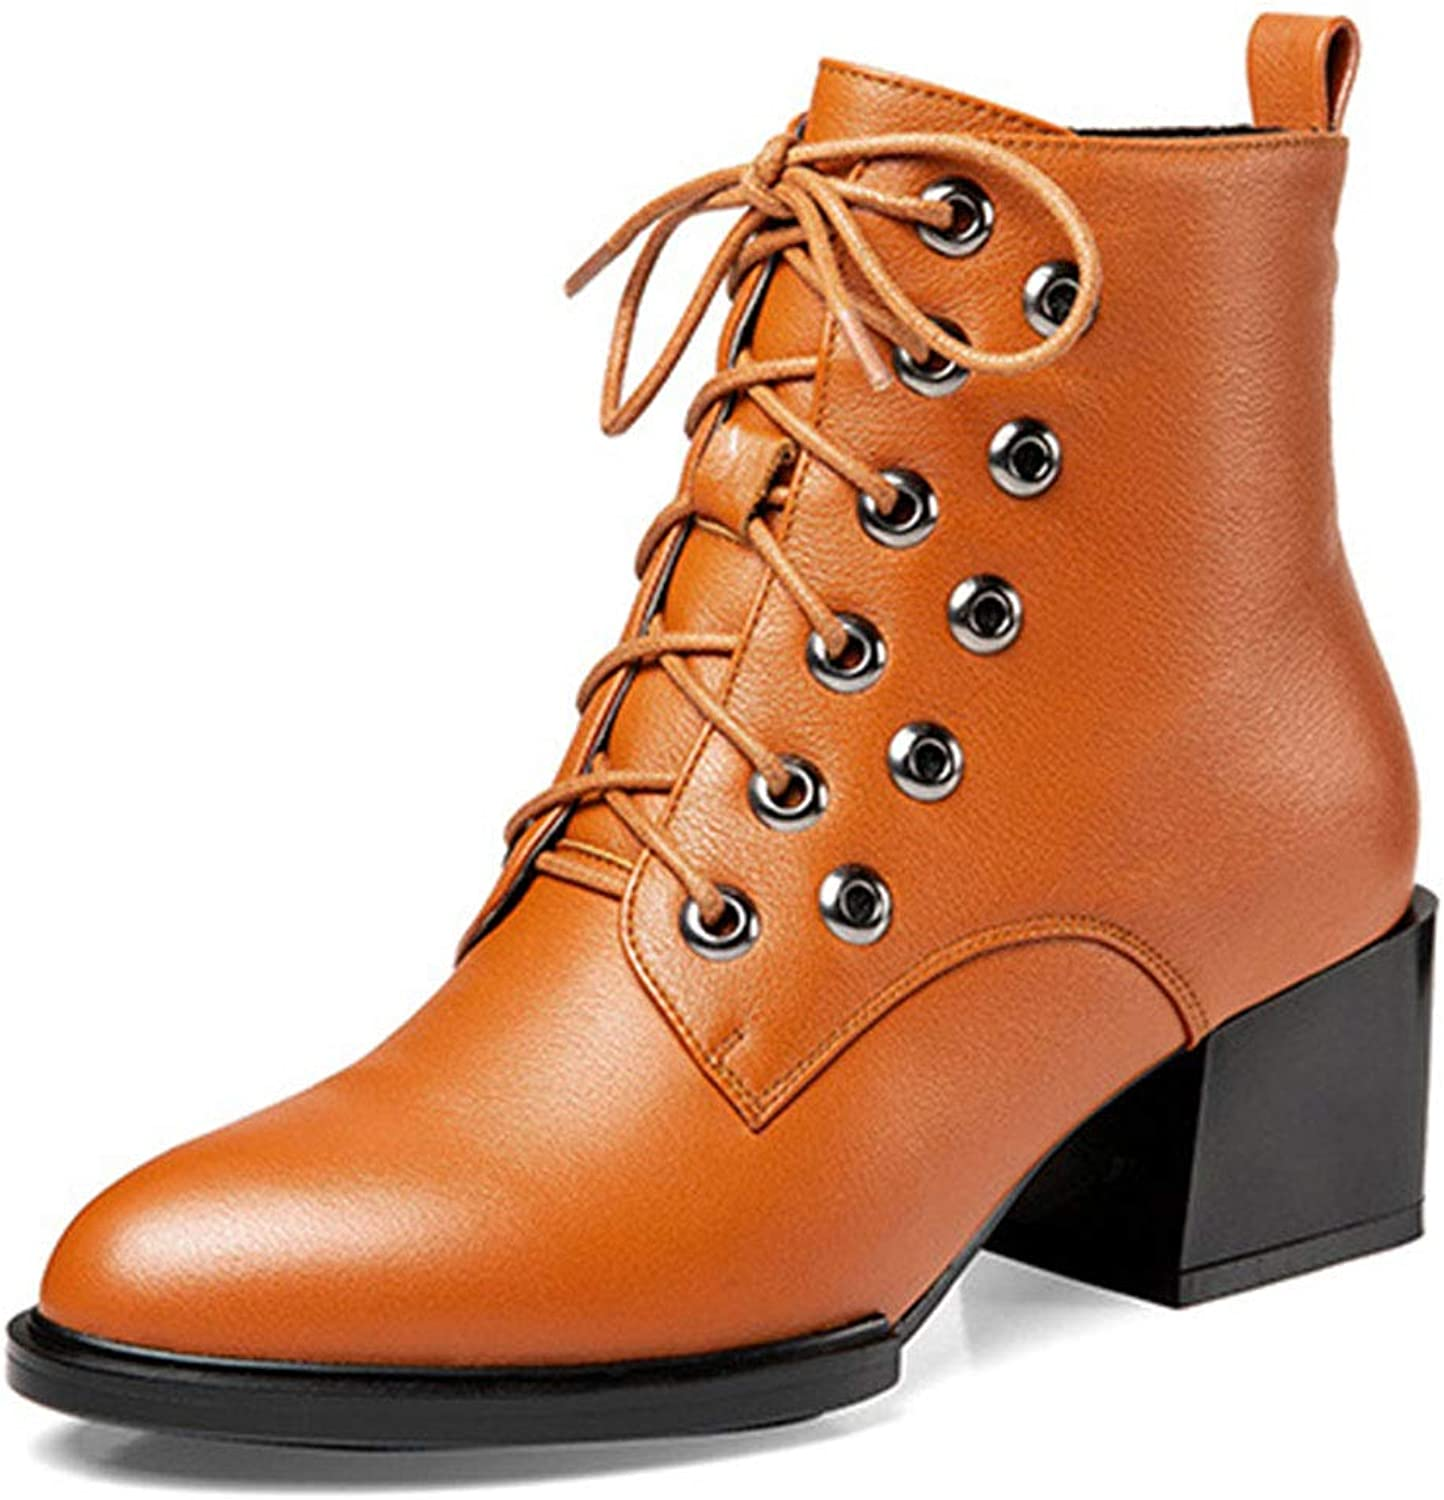 Women's Winter Martin Boots Leather Thick with Round Head lace up Low Boots with Side Zipper Solid color Martin Boots